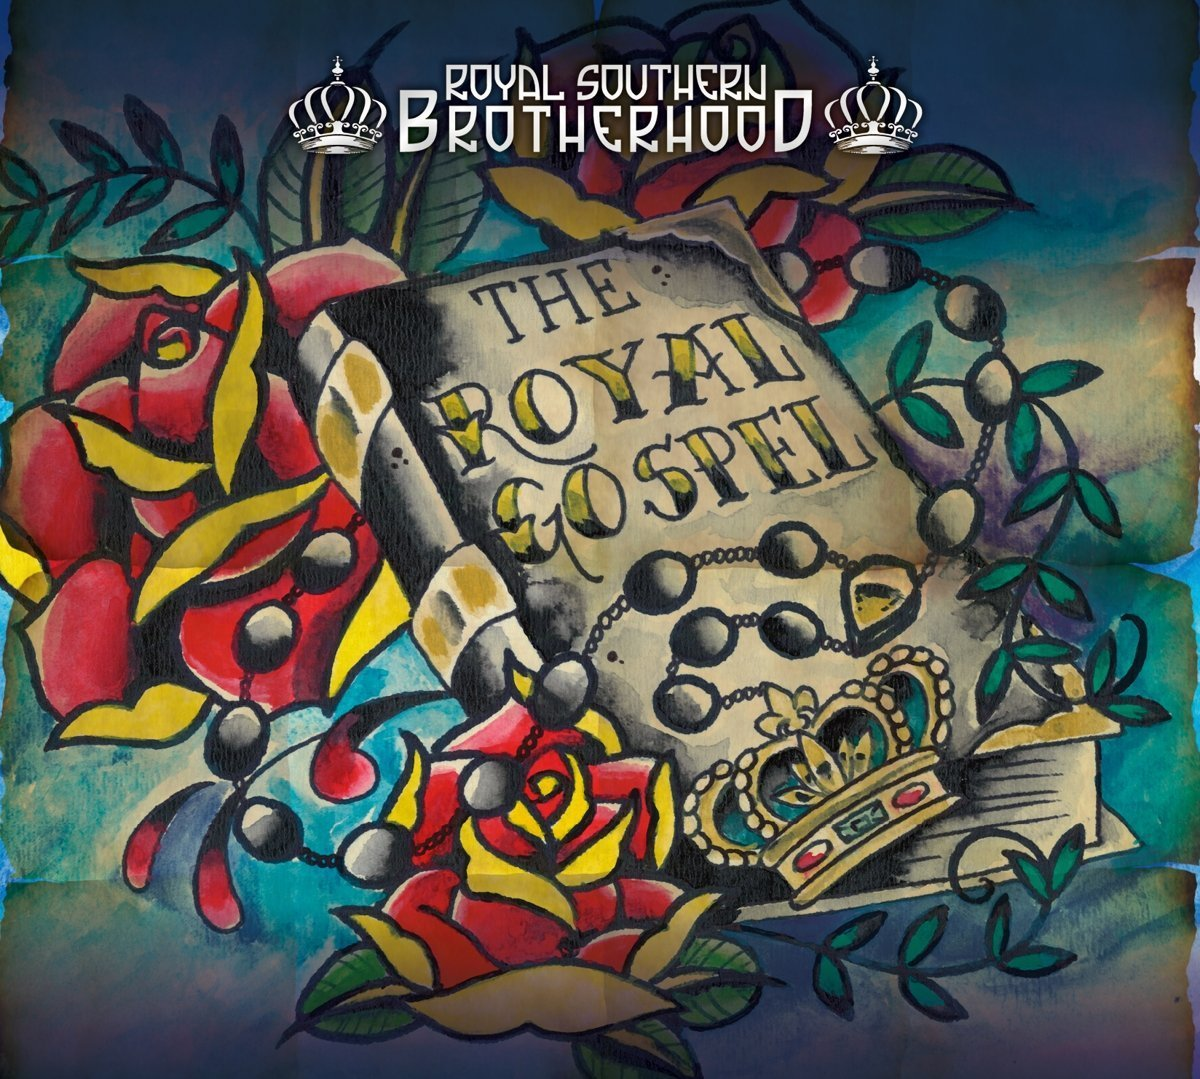 ROYAL SOUTHERN BROTHERHOOD – I wonder why